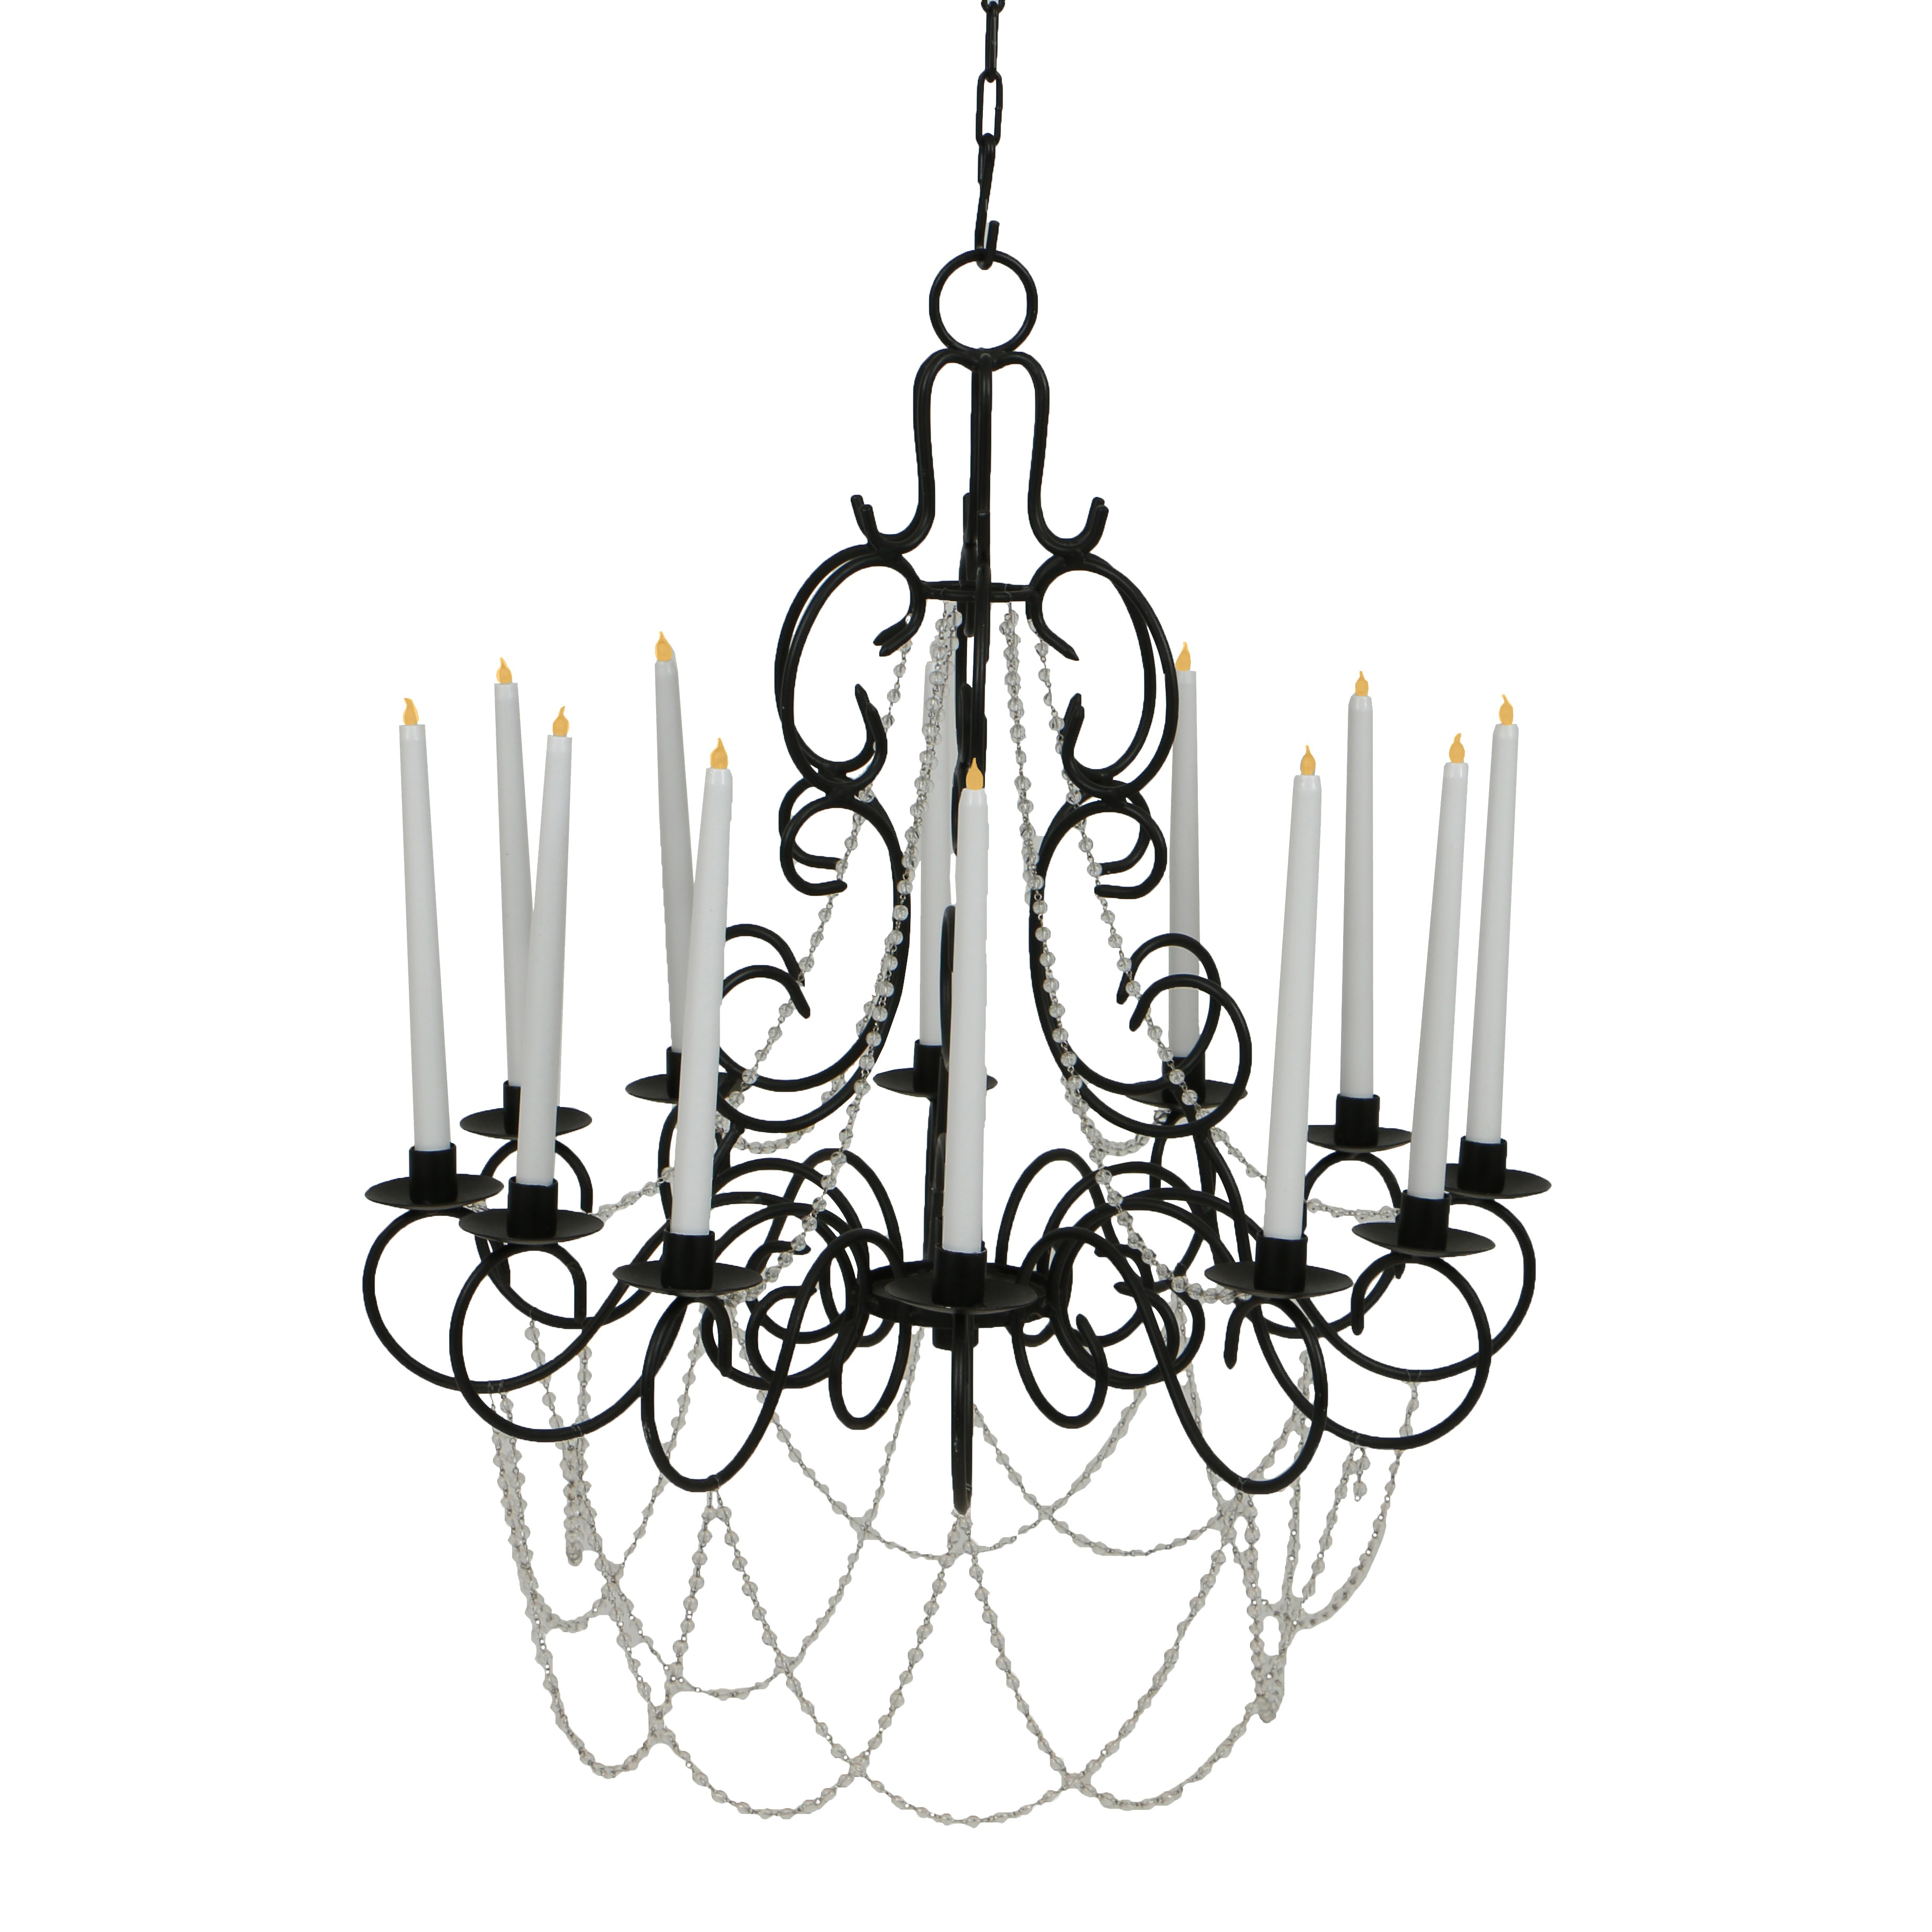 Contemporary Scrolled-Wire, Thirteen-Light Chandelier